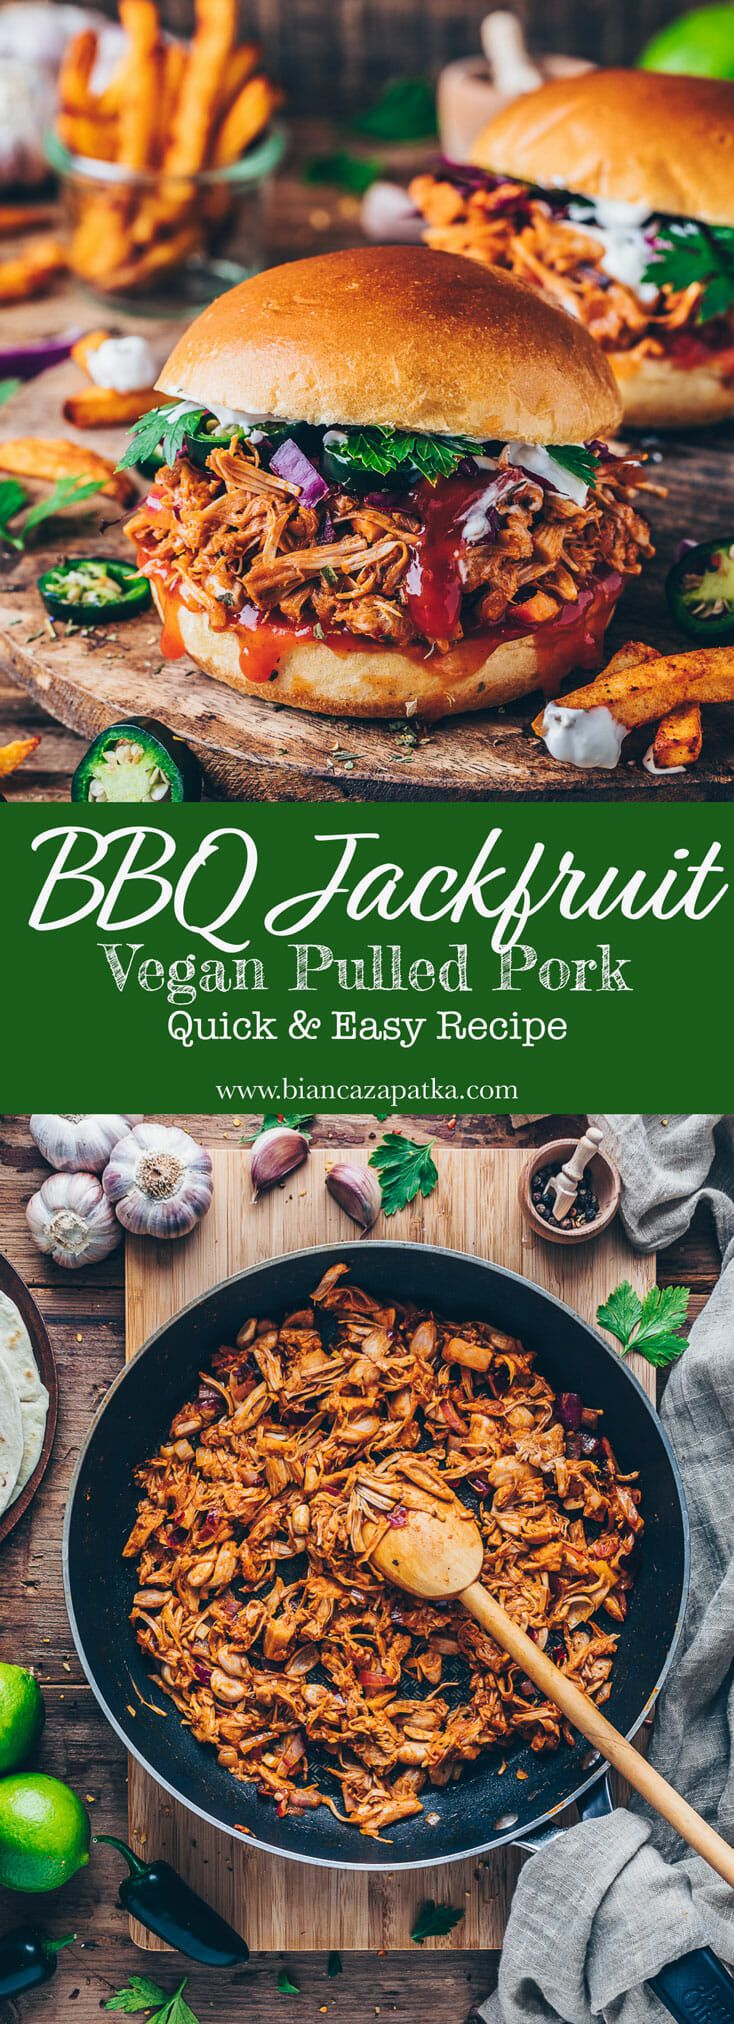 BBQ Jackfruit Pulled Pork Burger & Tortilla Wraps - Bianca Zapatka | Recipes